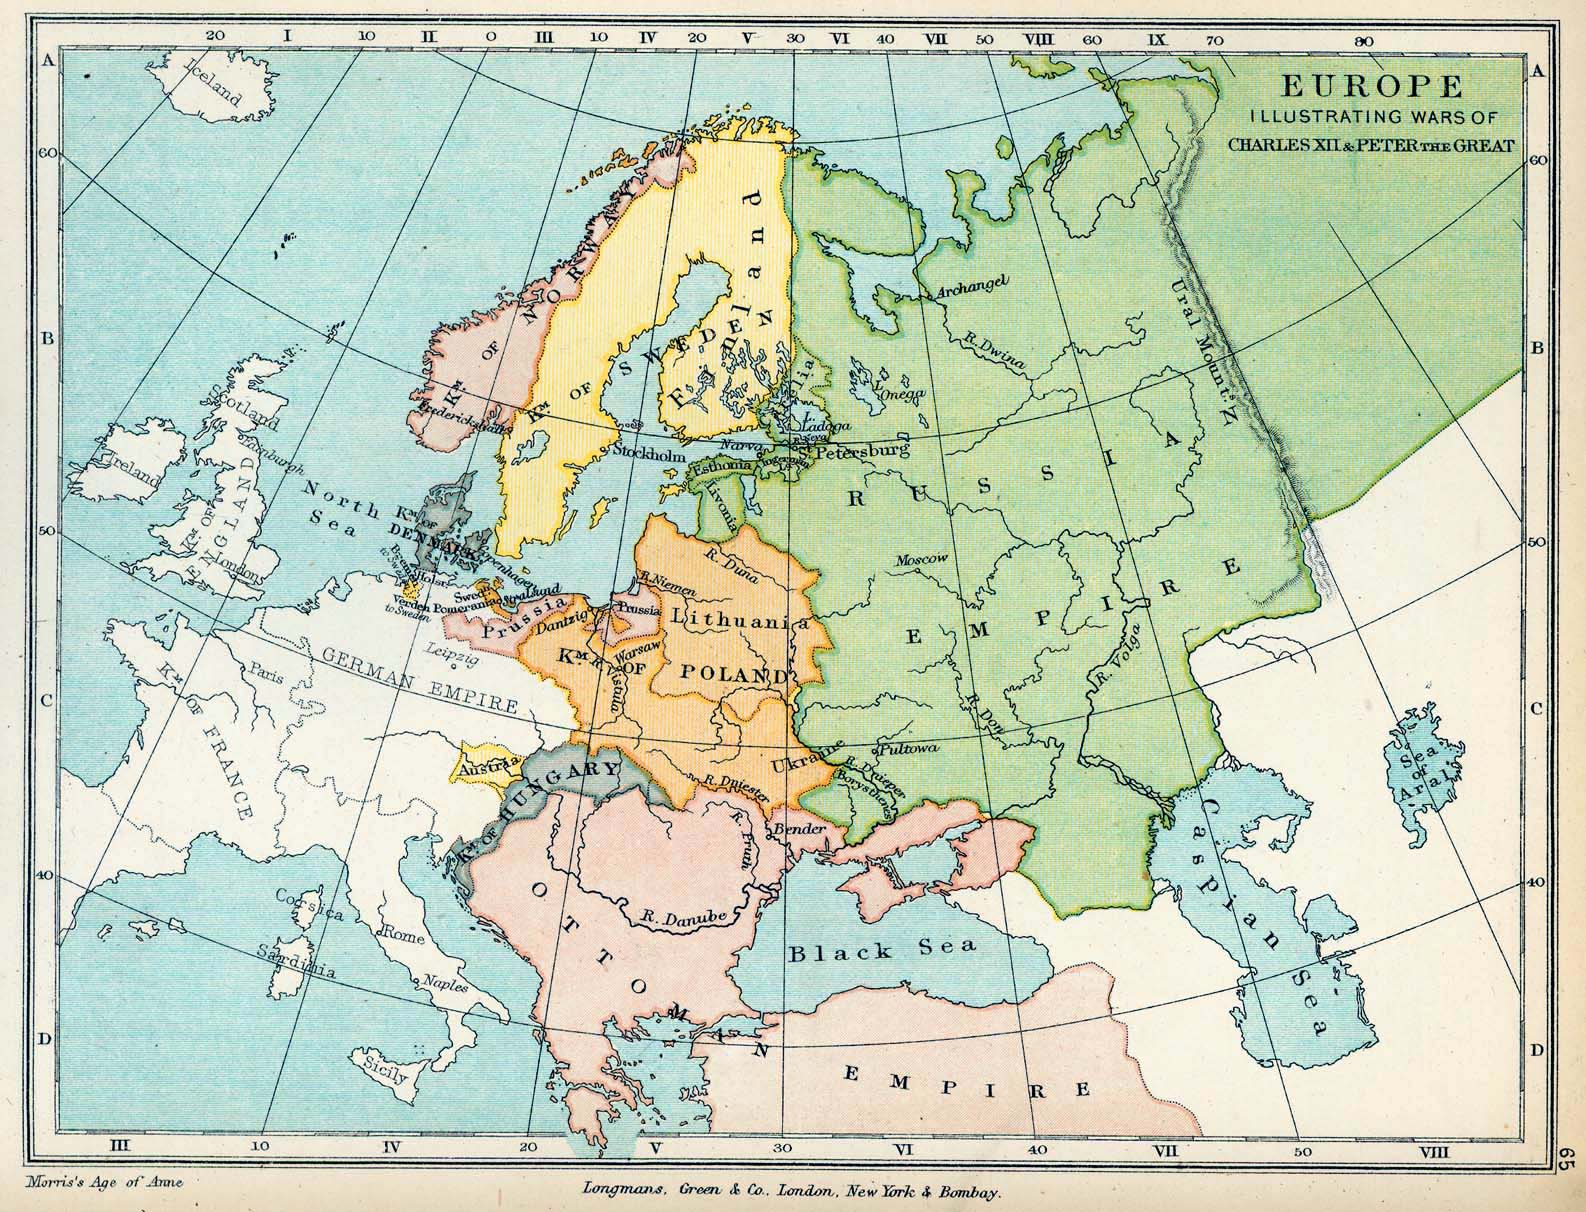 Map of Europe: The Wars of Charles XII and Peter the Great